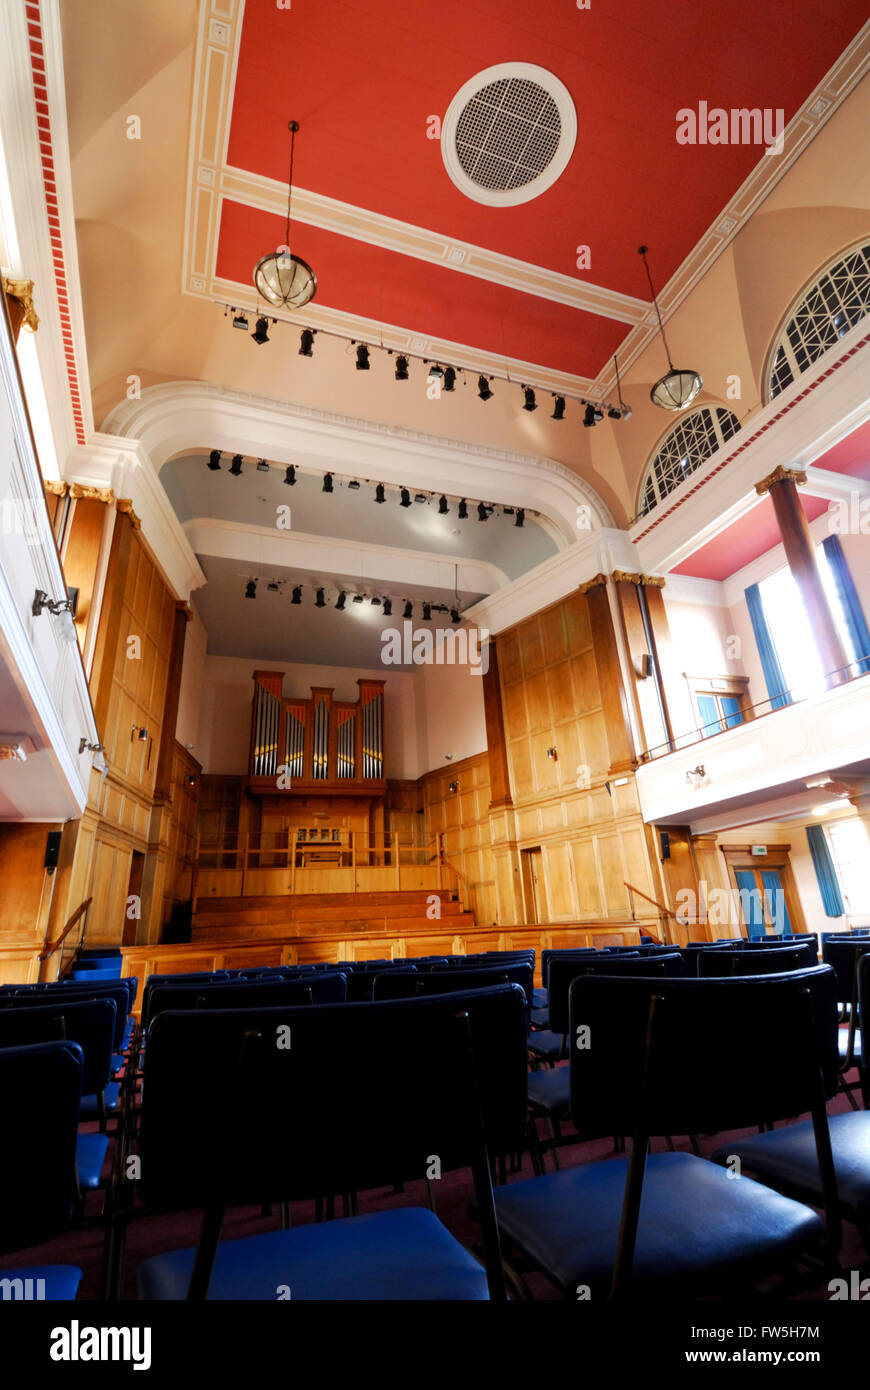 St. Andrew's University, Fife, Younger Hall, music faculty concert hall, interior - Stock Image